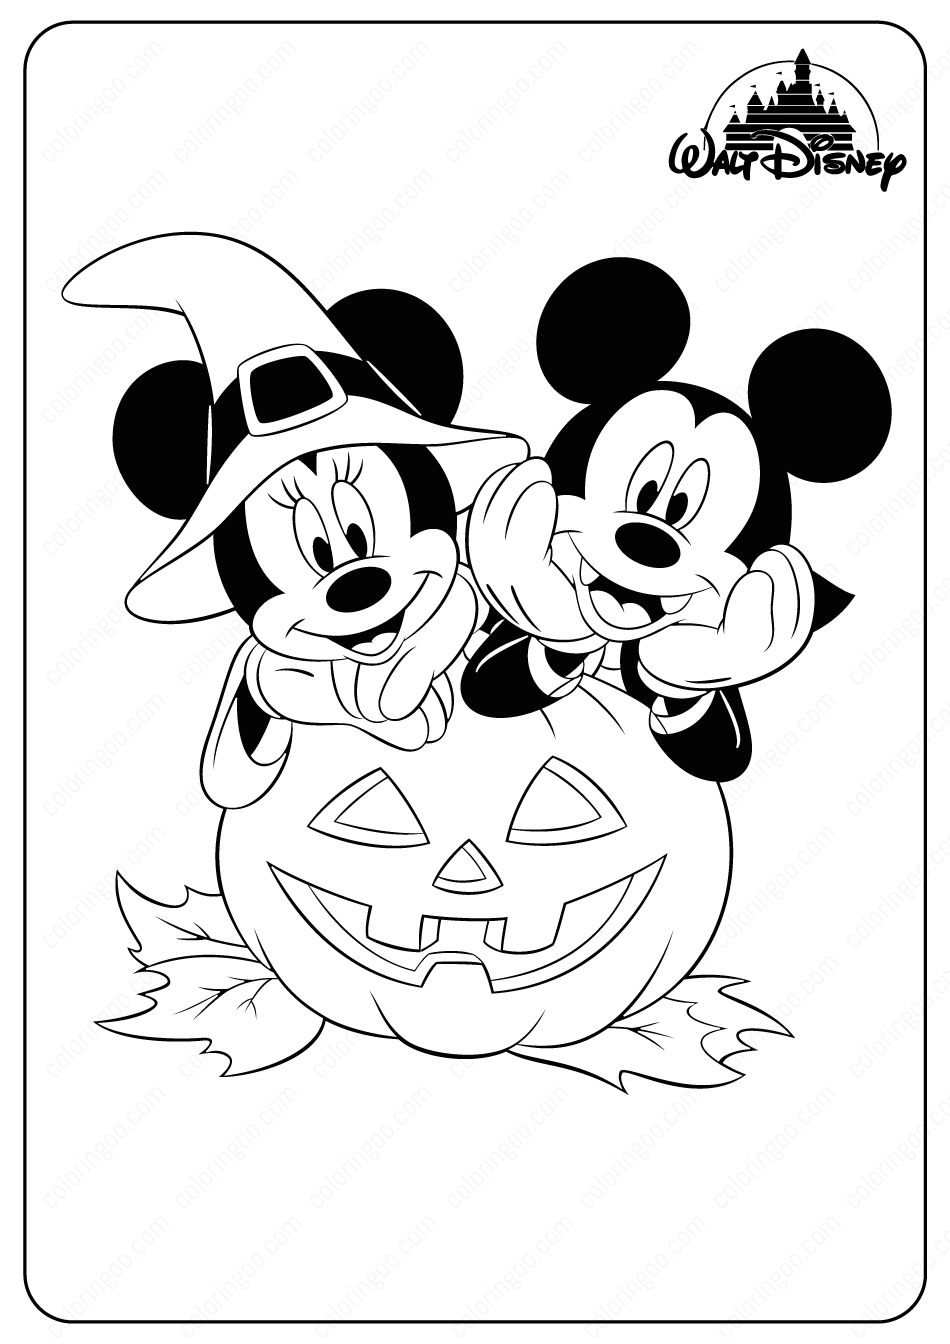 Minnie Mickey Halloween Coloring Pages In 2020 Halloween Coloring Book Halloween Coloring Pages Halloween Coloring Sheets